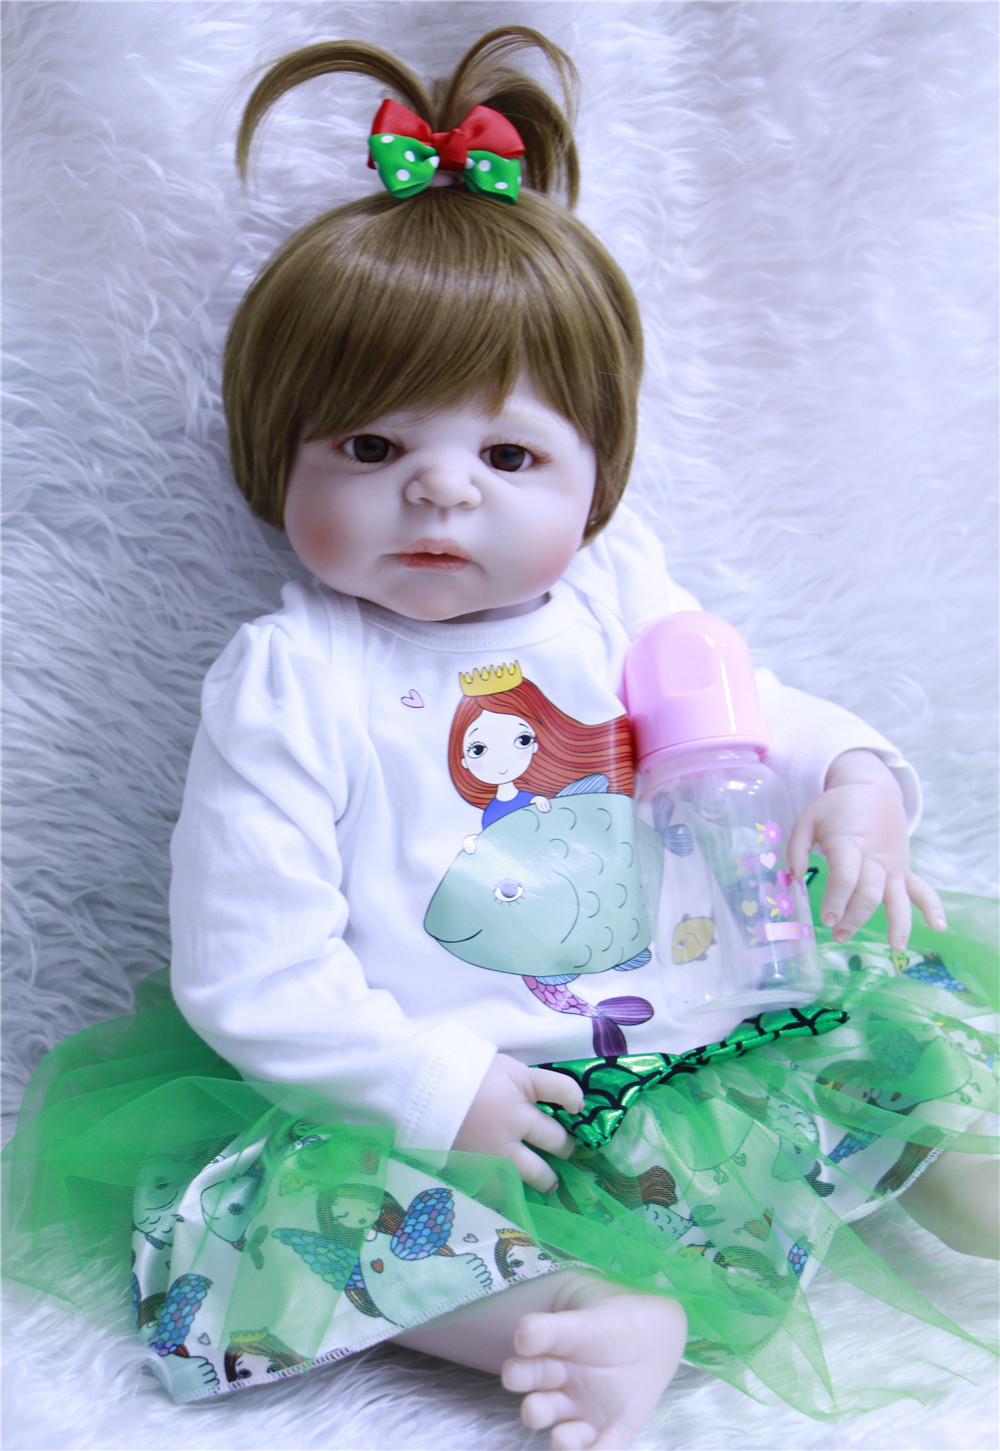 DollMai fake baby doll silicone 2357cm girl body princess reborn babies dolls for children gift bebes reborn menina bonecasDollMai fake baby doll silicone 2357cm girl body princess reborn babies dolls for children gift bebes reborn menina bonecas